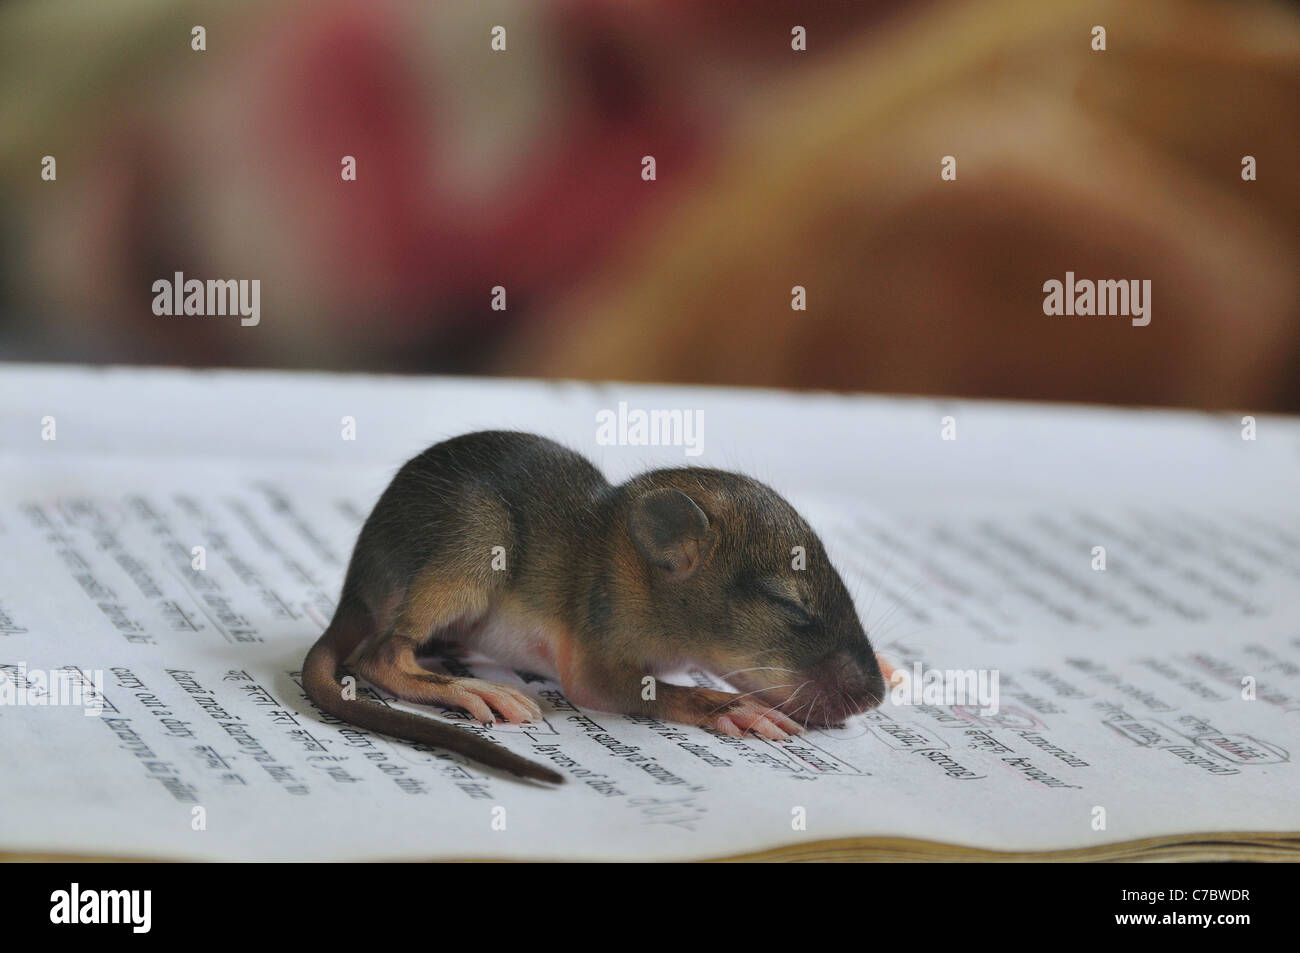 Baby Mole Stock Photo 38984787 Alamy